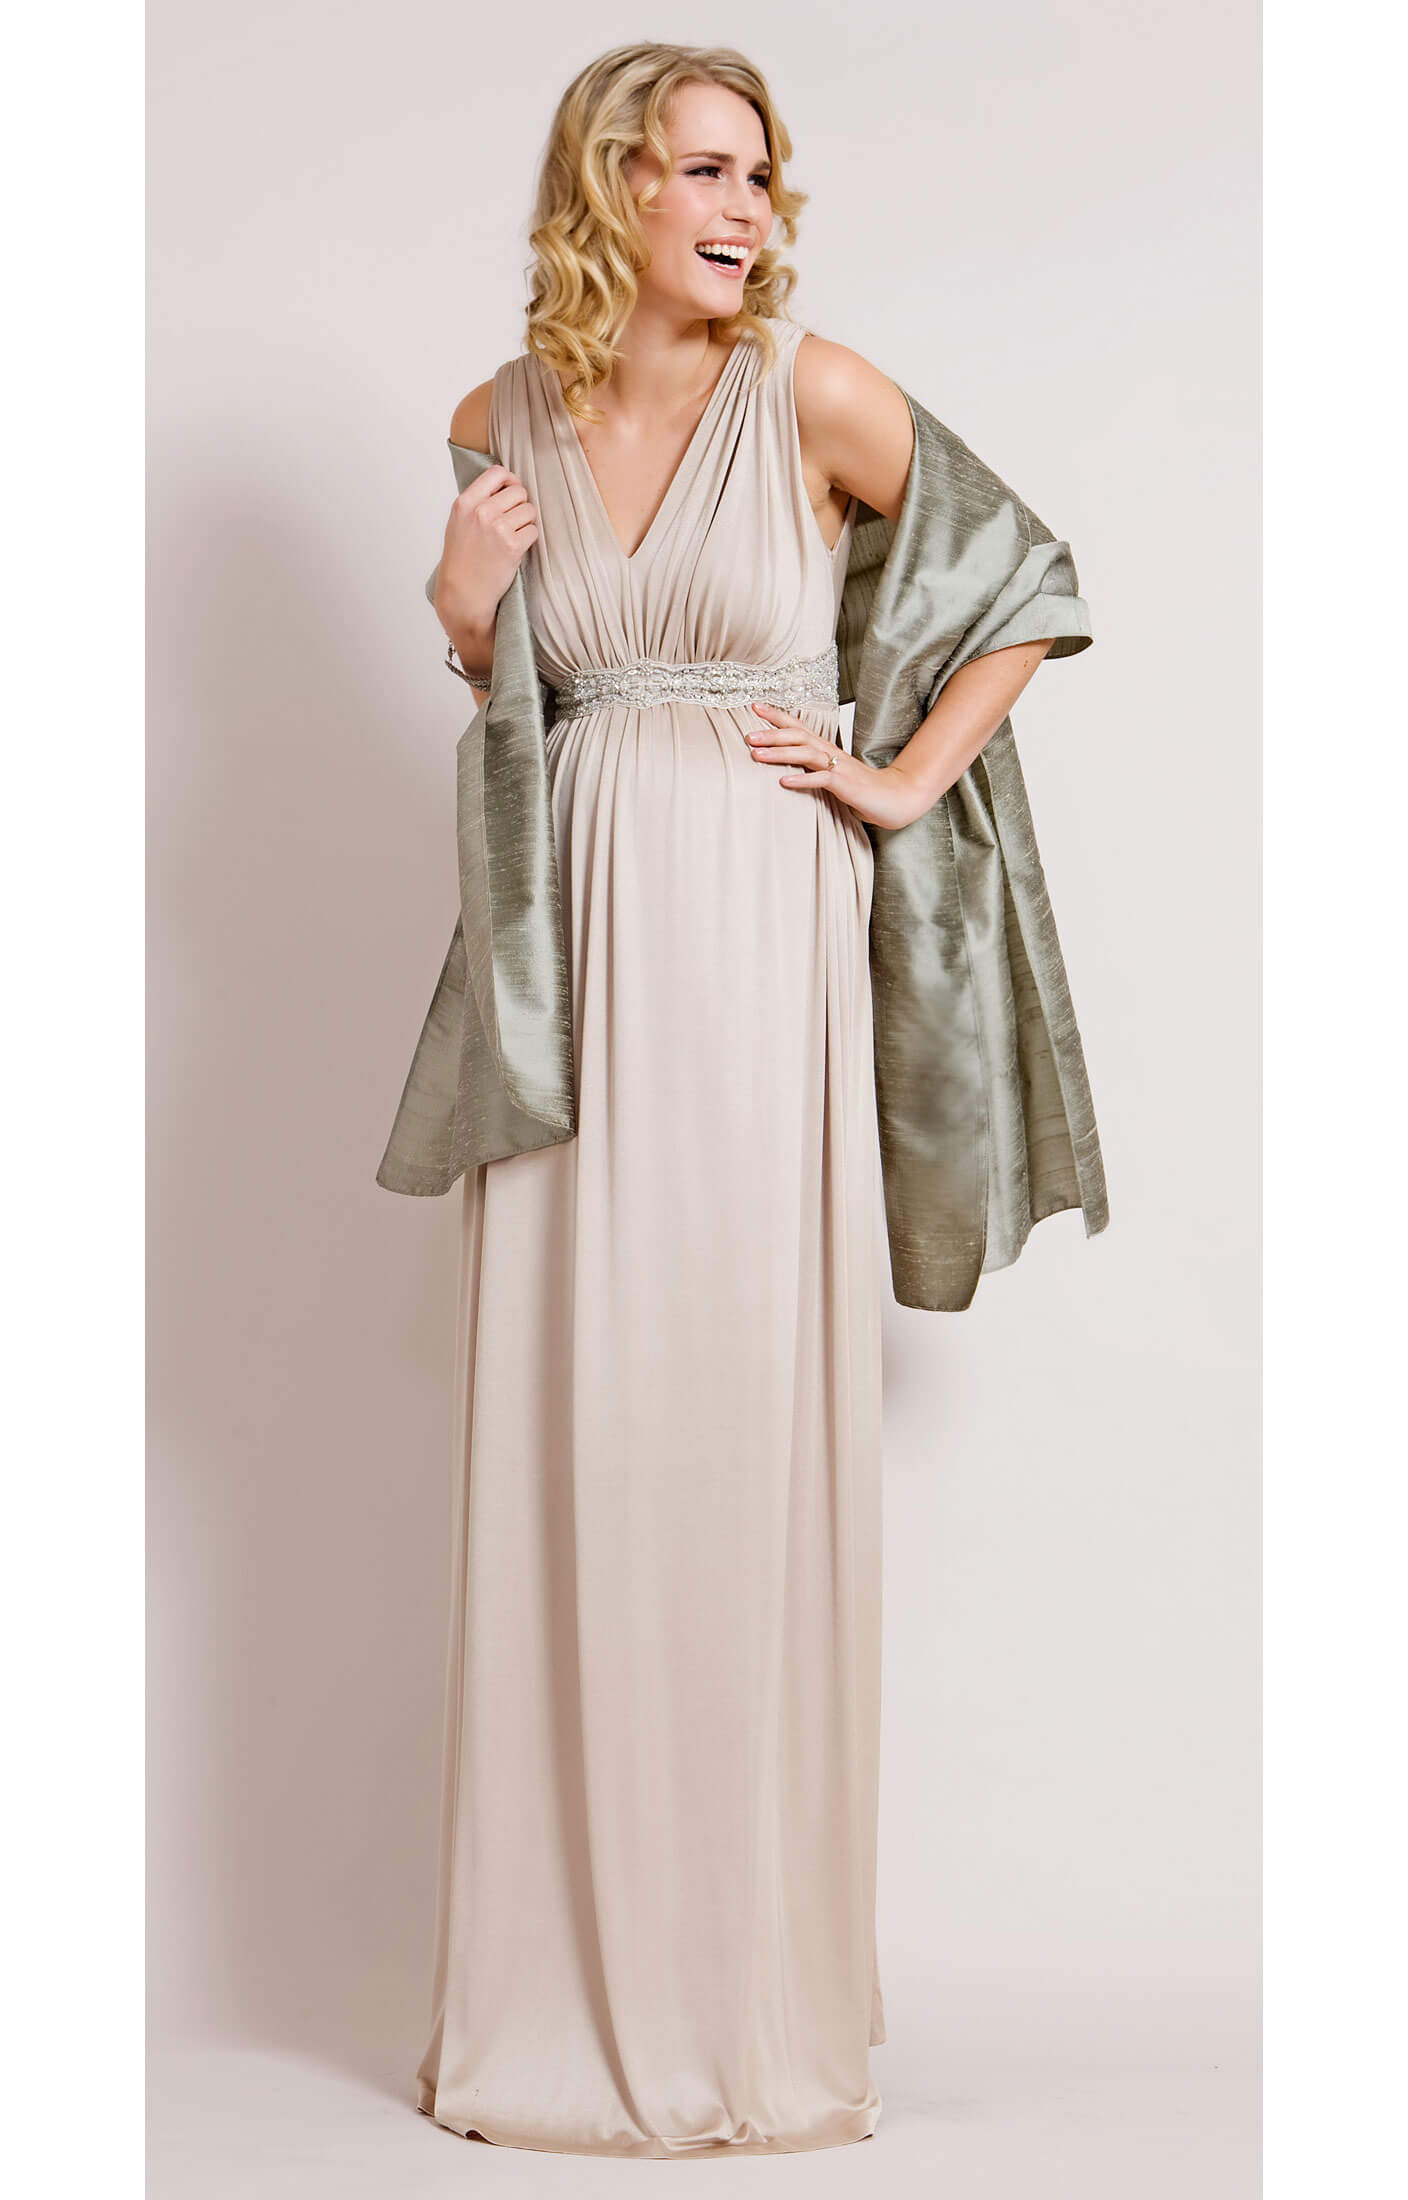 Champagne maternity gown long maternity wedding dresses champagne maternity gown long by tiffany rose ombrellifo Gallery